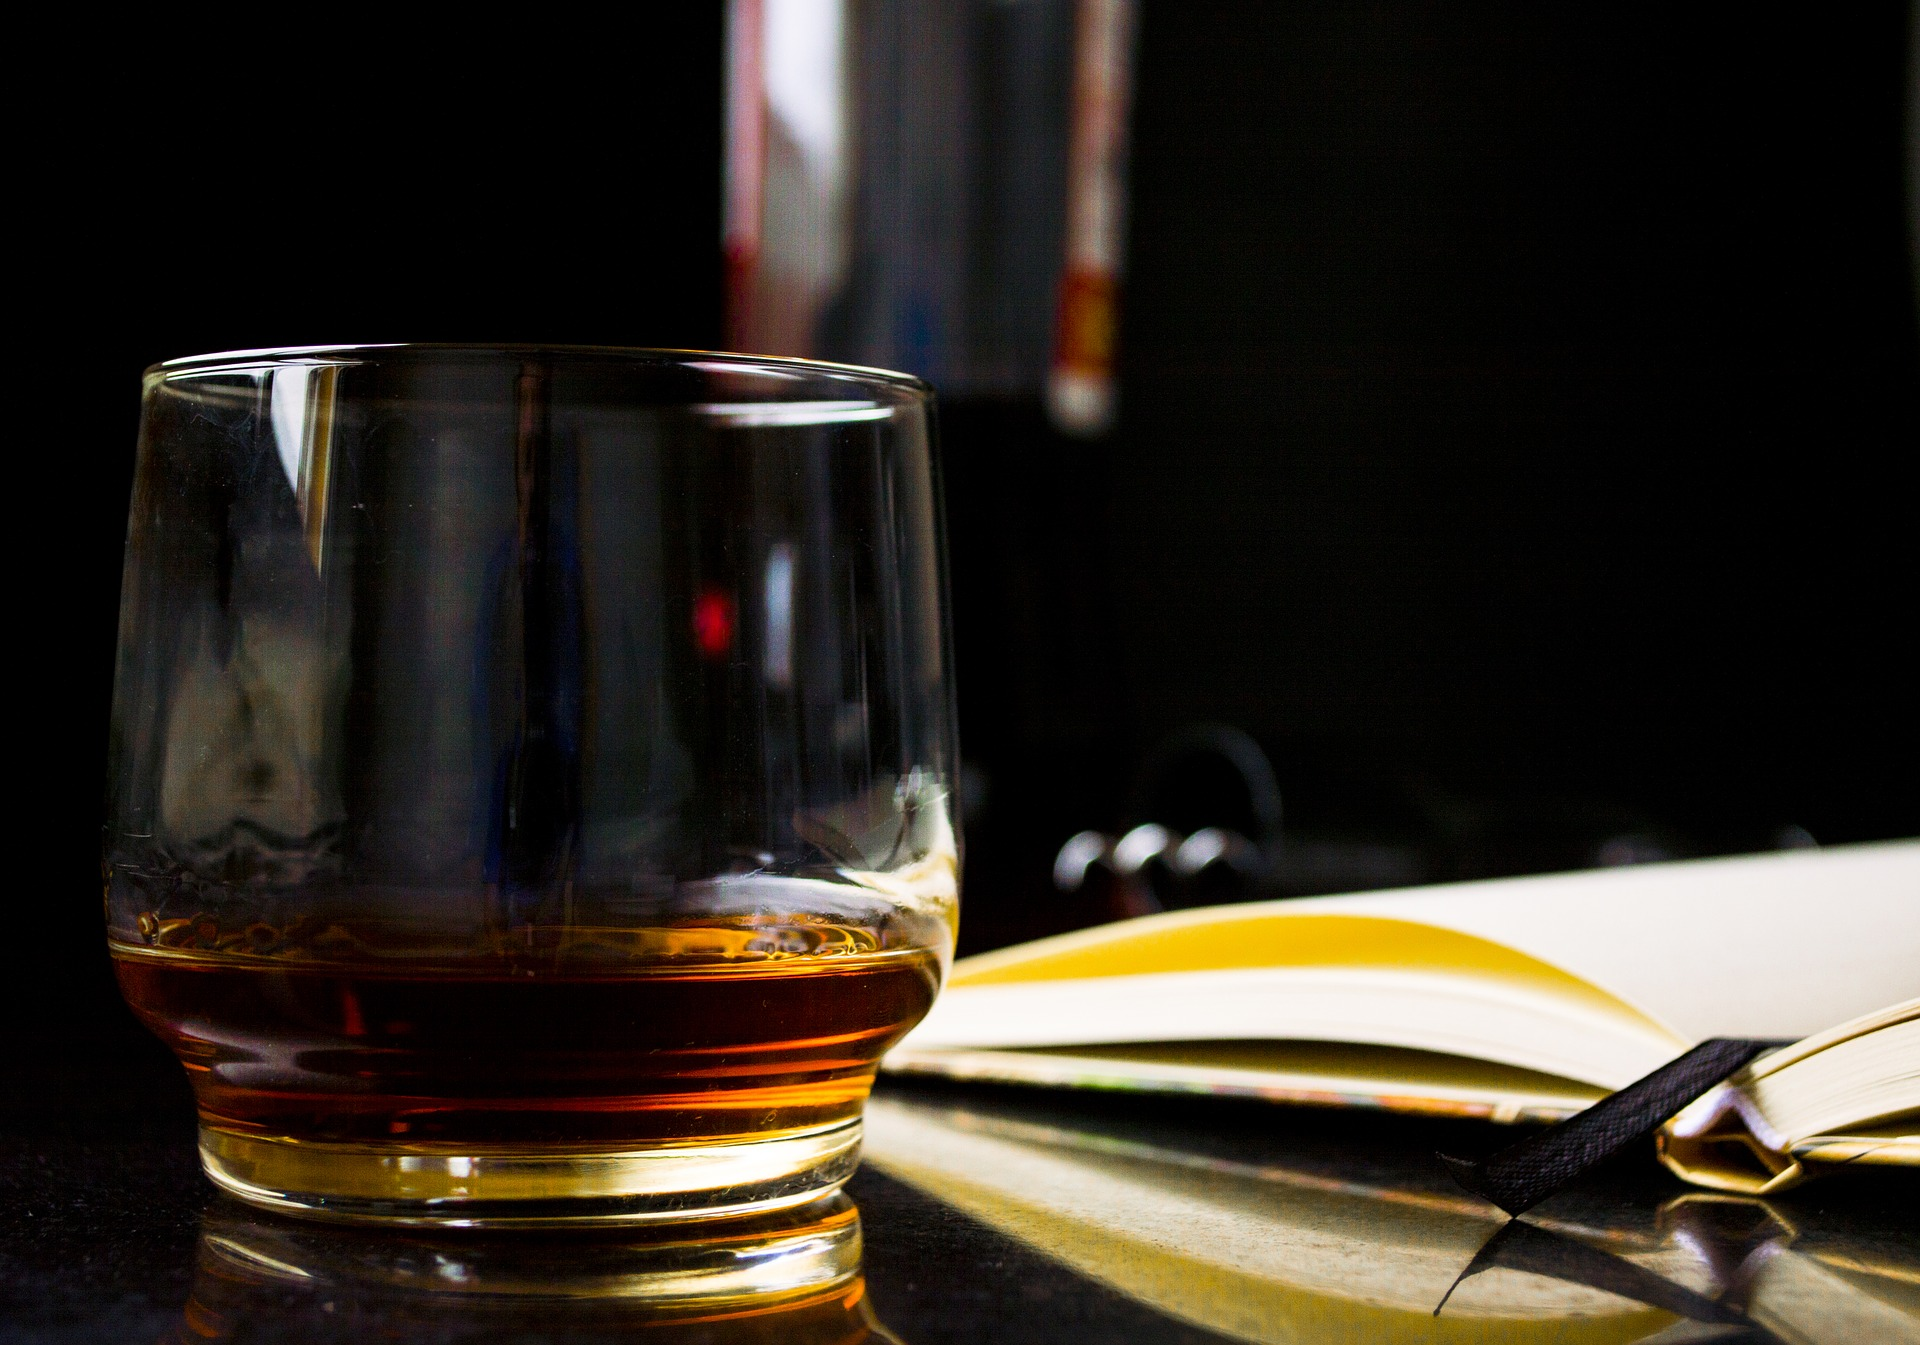 Knowledge Center - whiskey and book